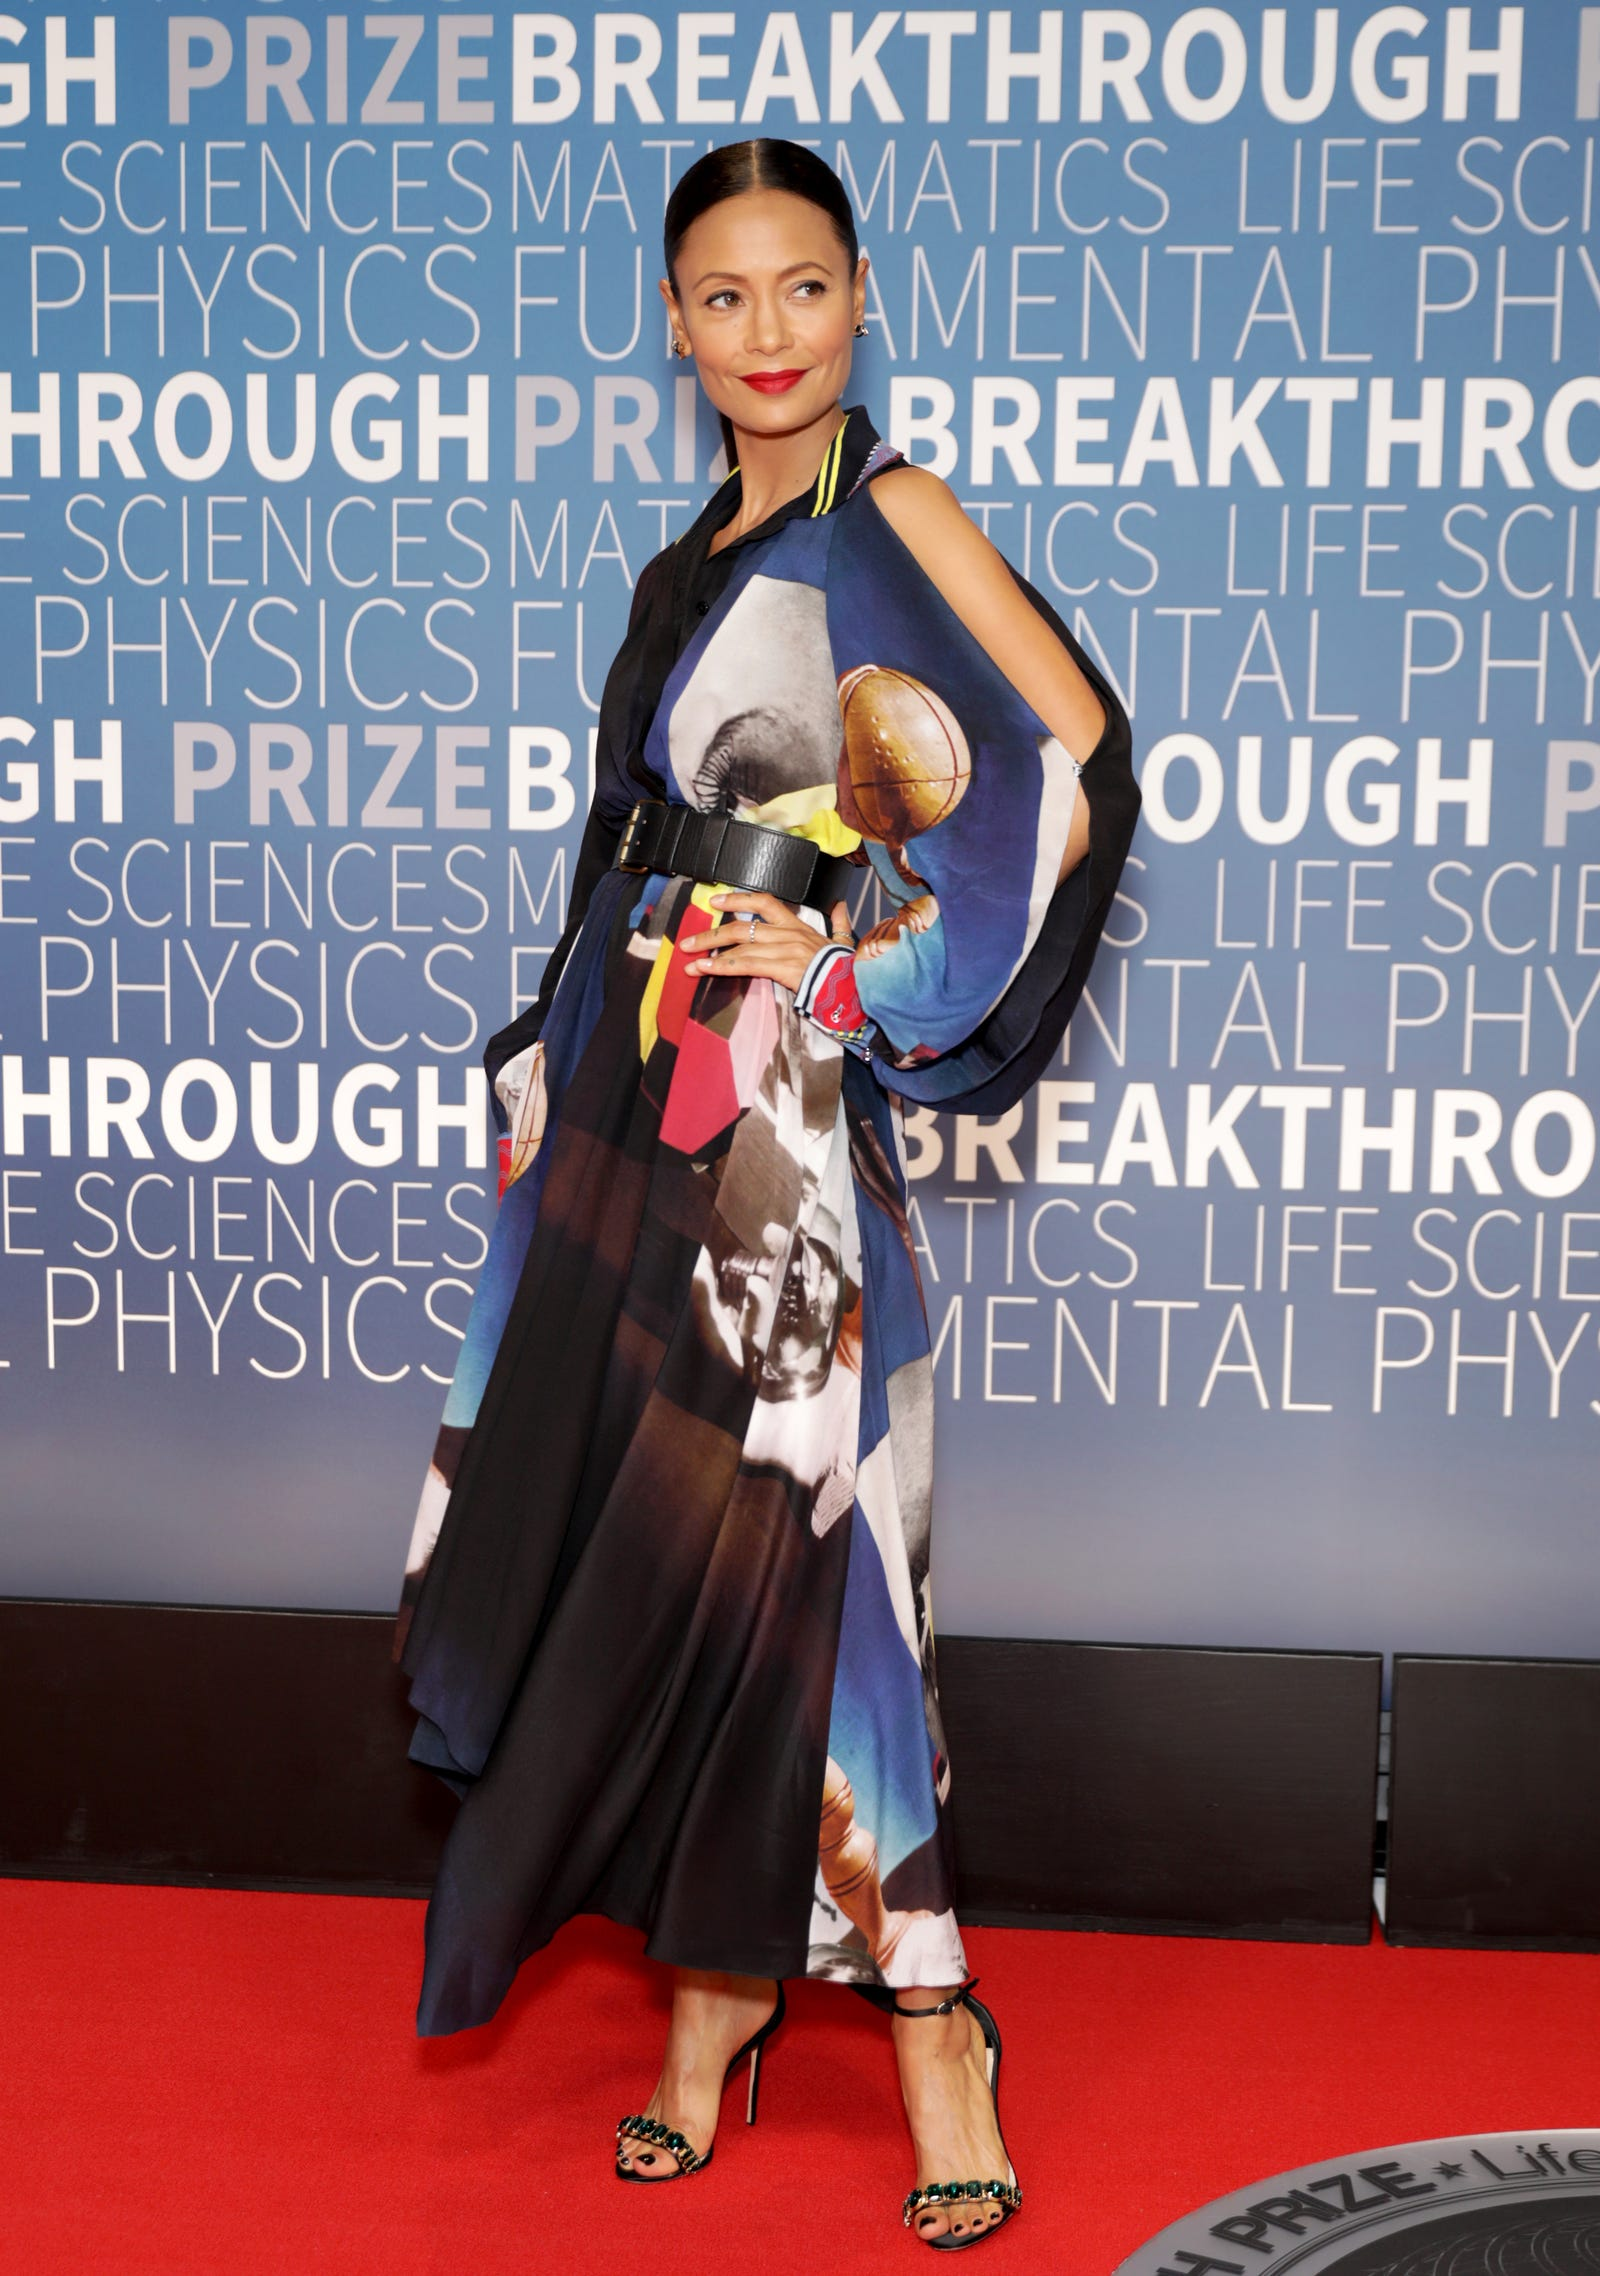 Thandie Newton attends the 2019 Breakthrough Prize at NASA Ames Research Center on November 4, 2018 in Mountain View, California.